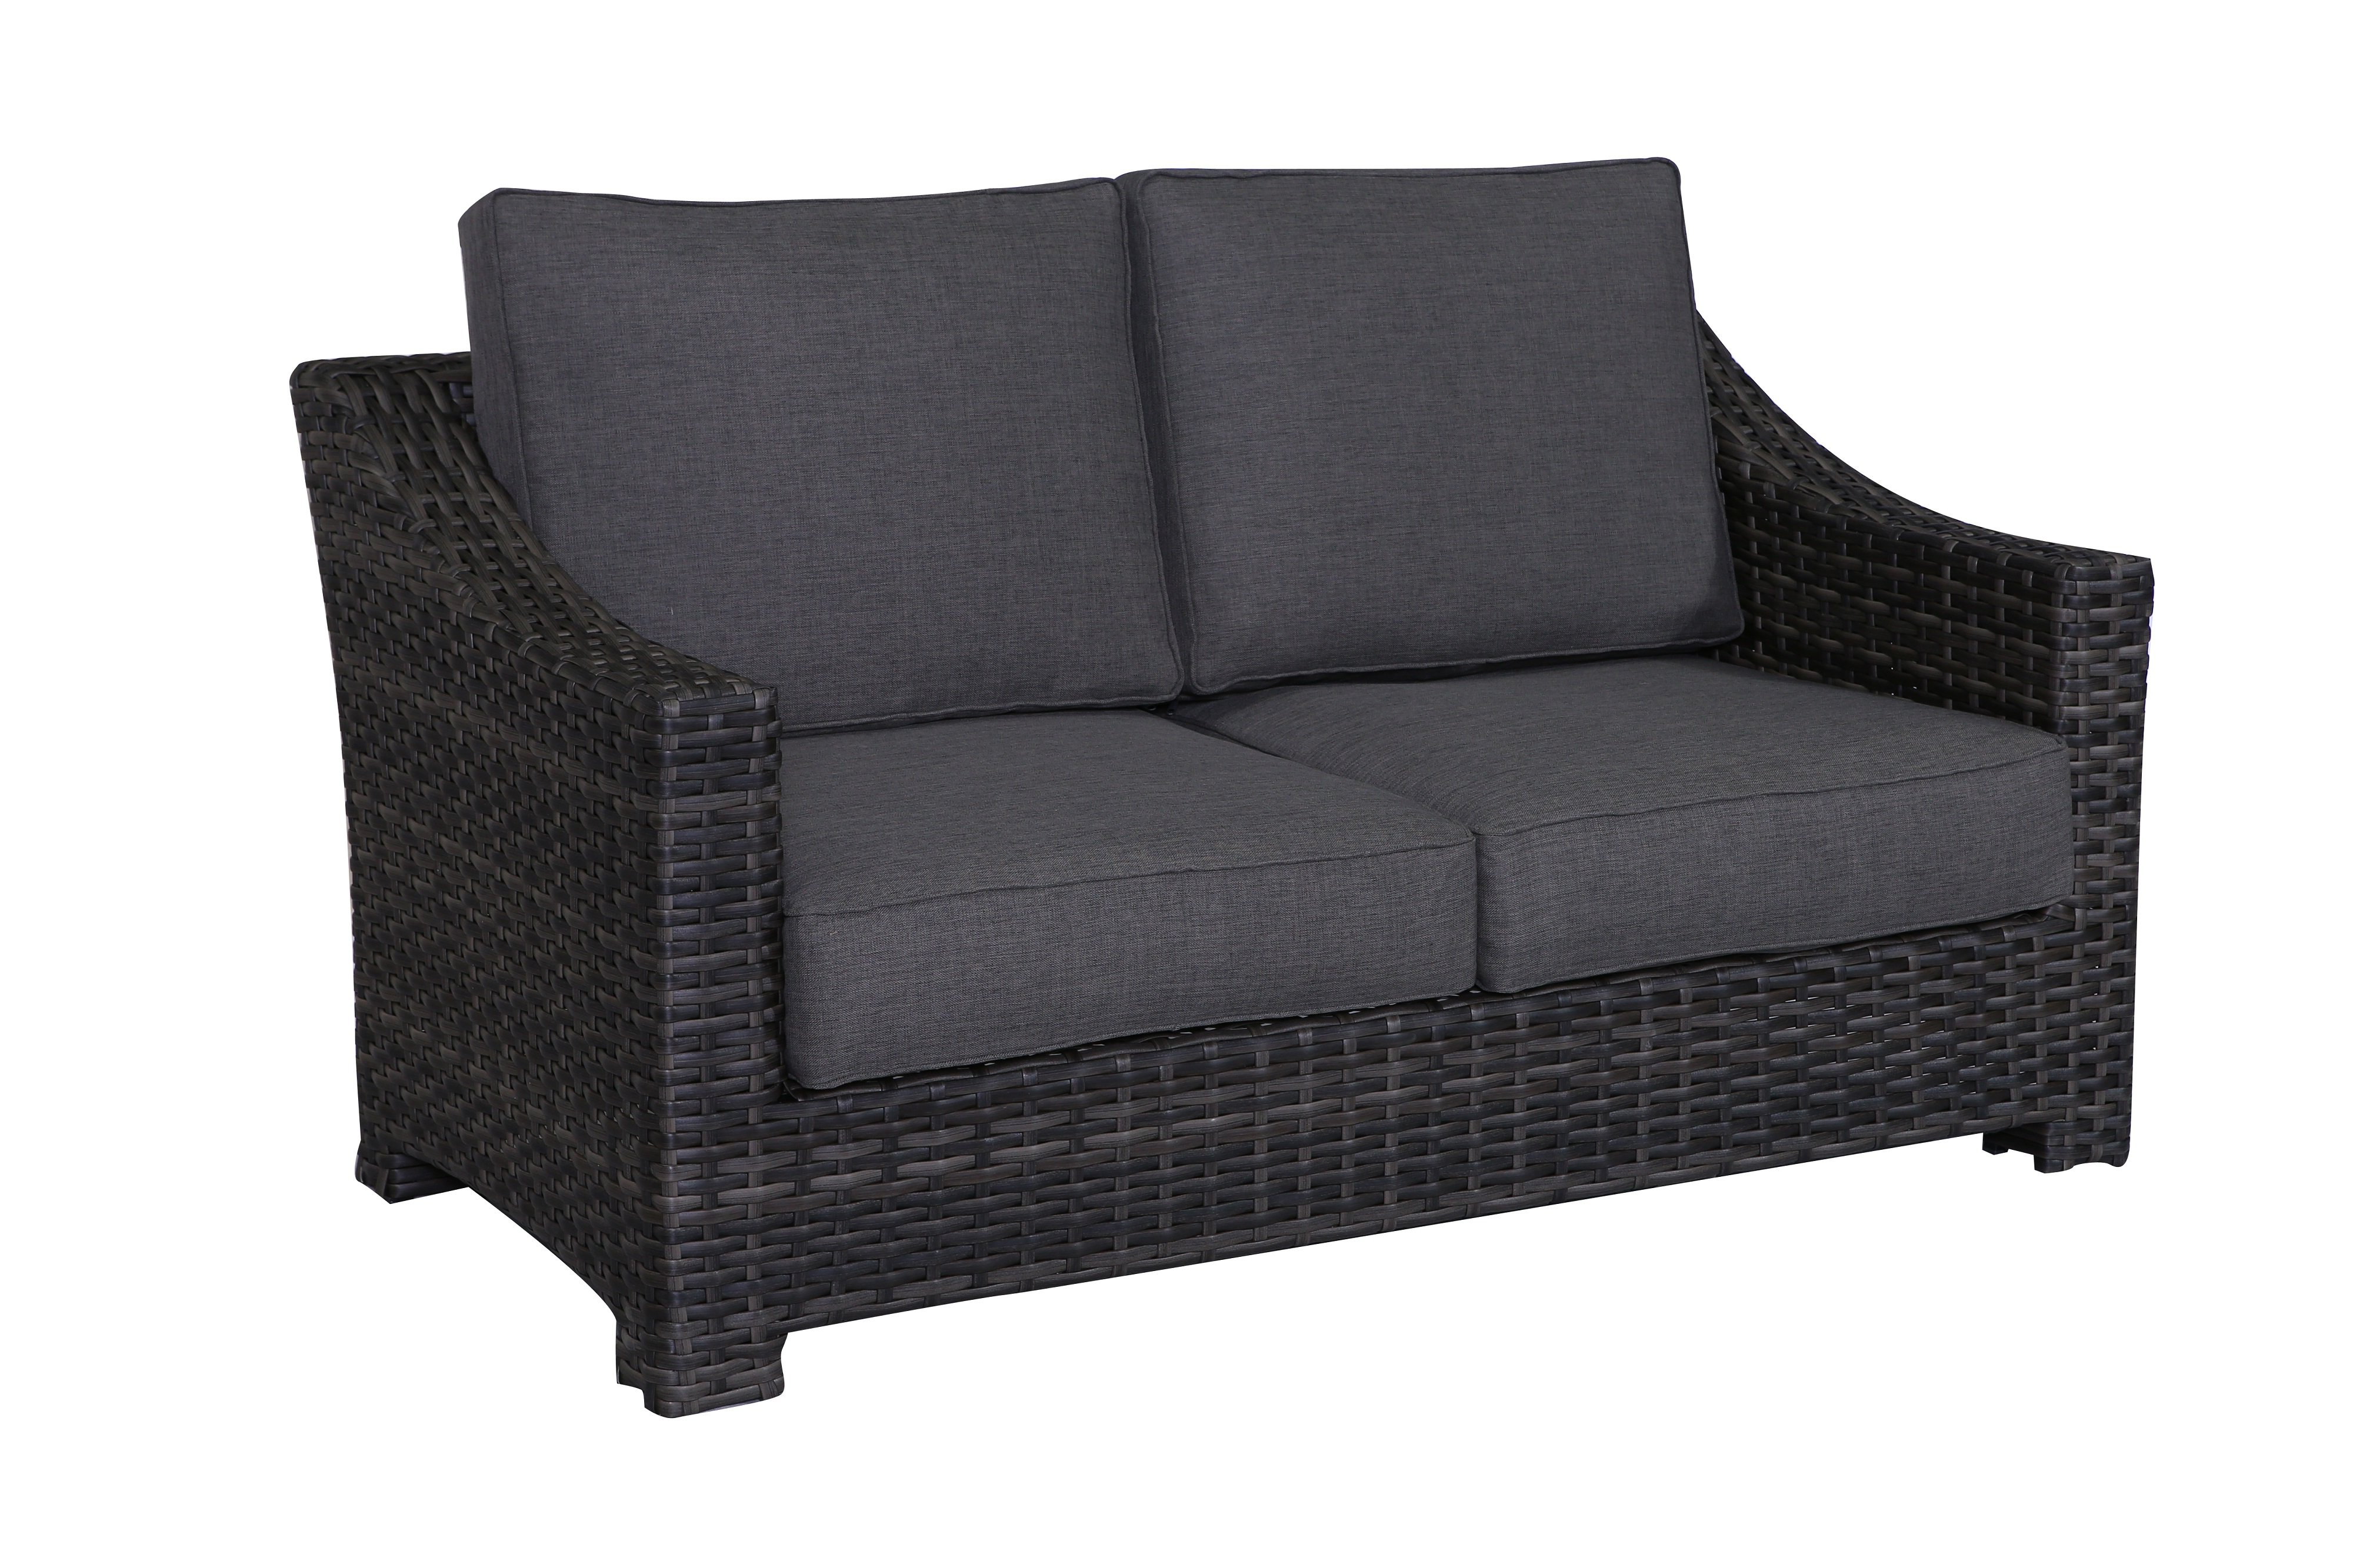 Donley Loveseat With Cushions Regarding Most Up To Date Mendelson Loveseats With Cushion (View 8 of 20)